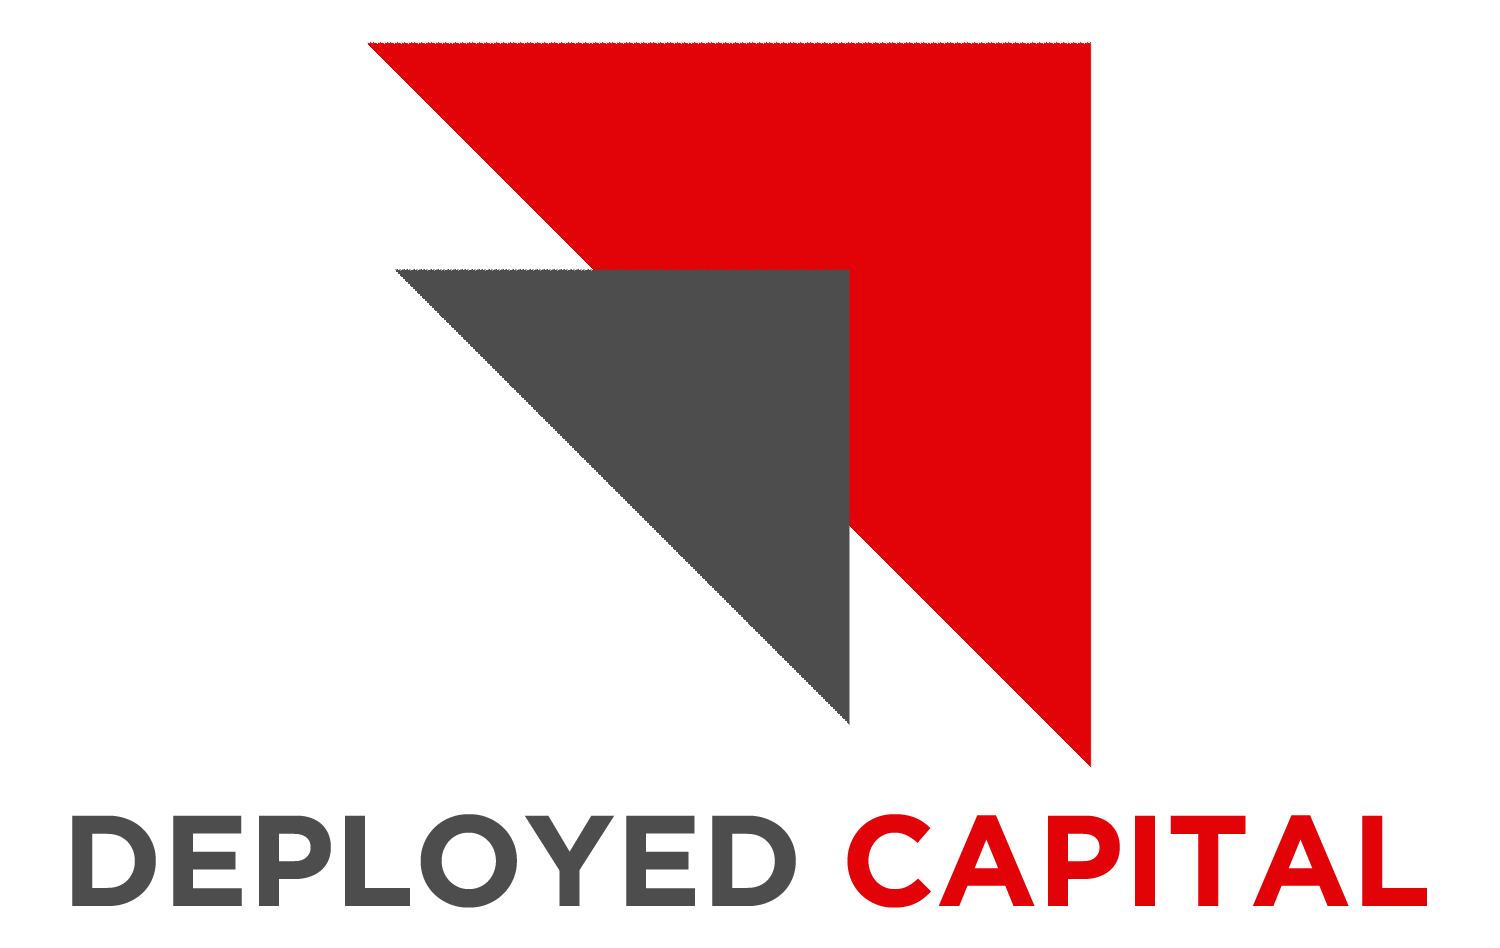 Deployed Capital Group Inc